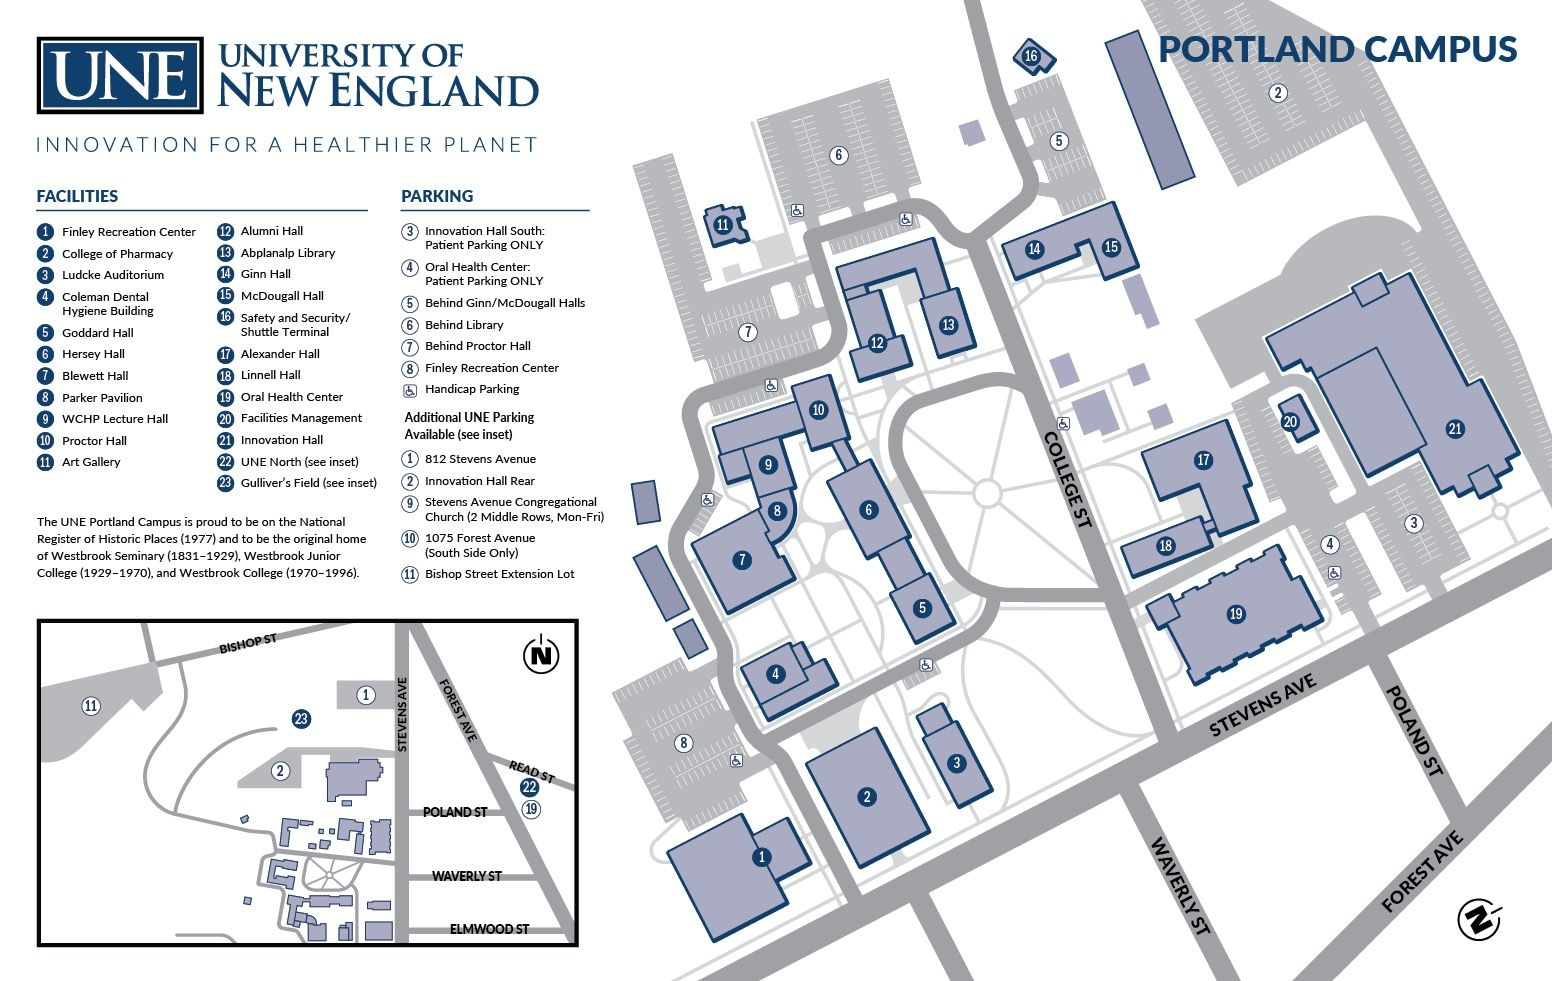 Pin by Emery Pajer on 2D City, Street and Campus Map ...